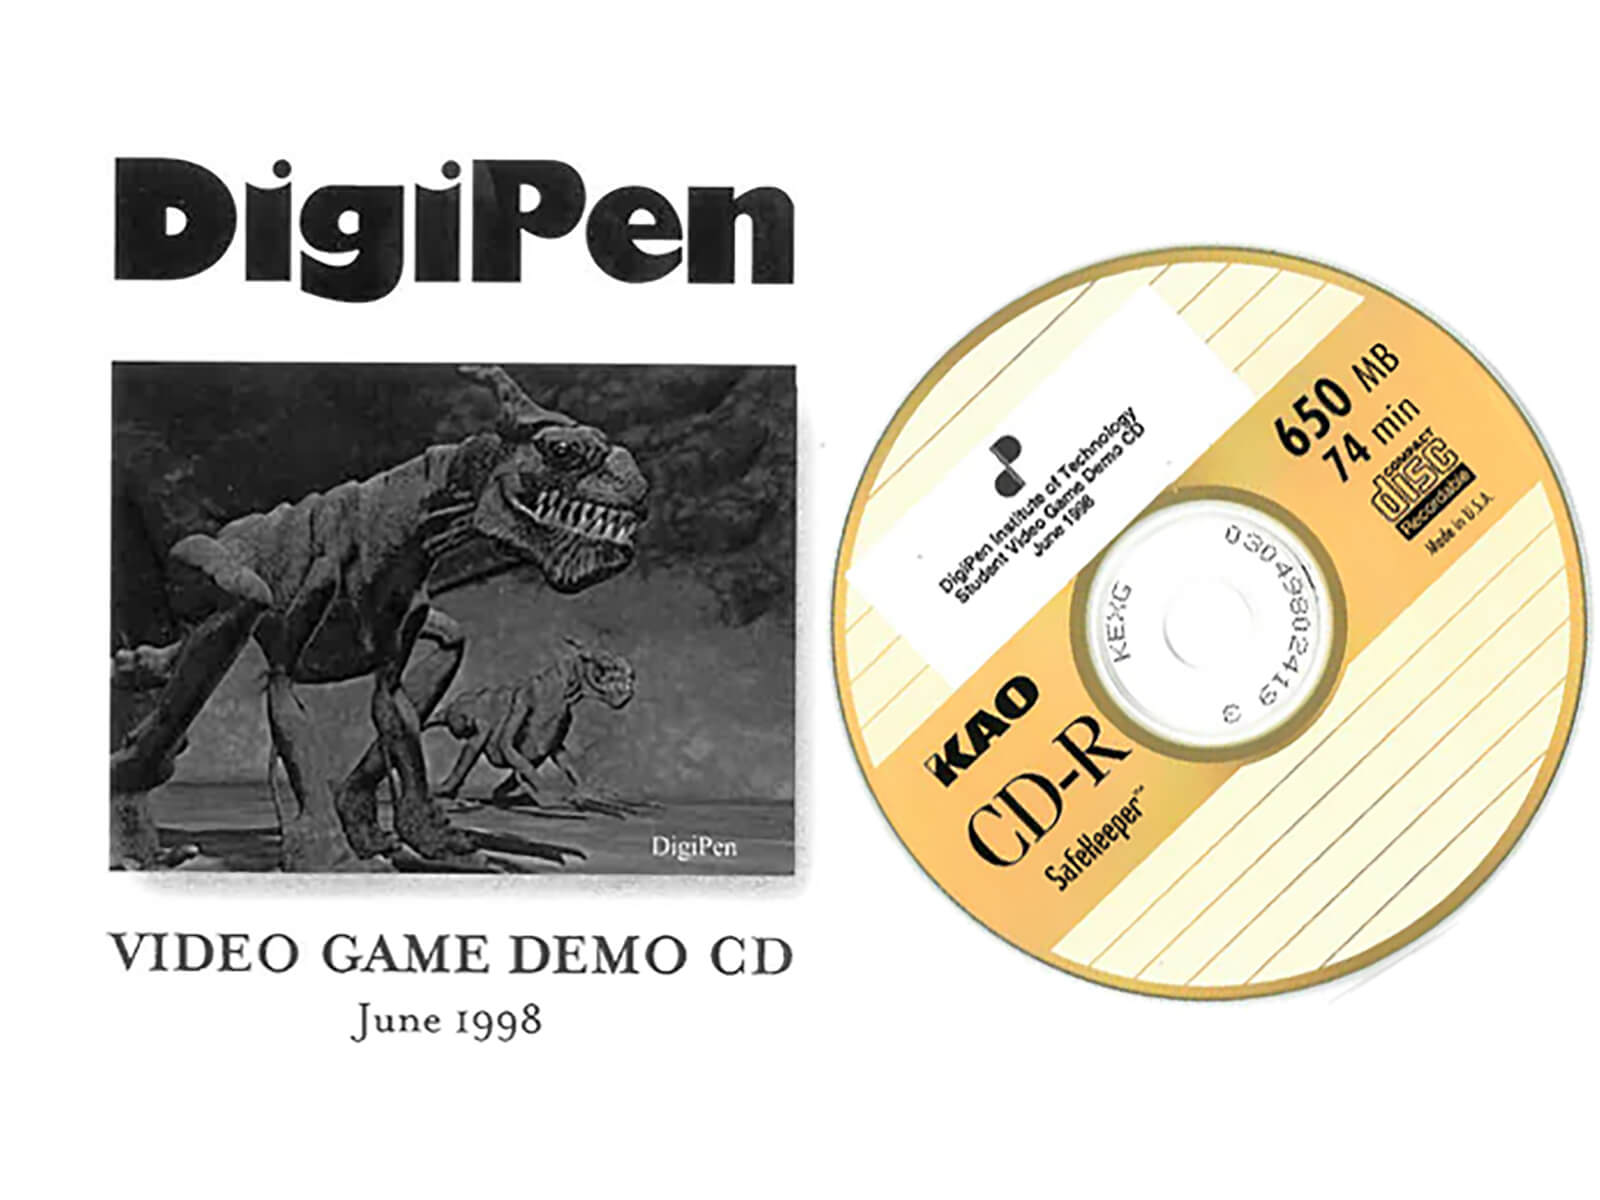 A picture of the 1998 DigiPen student video game demo CD.